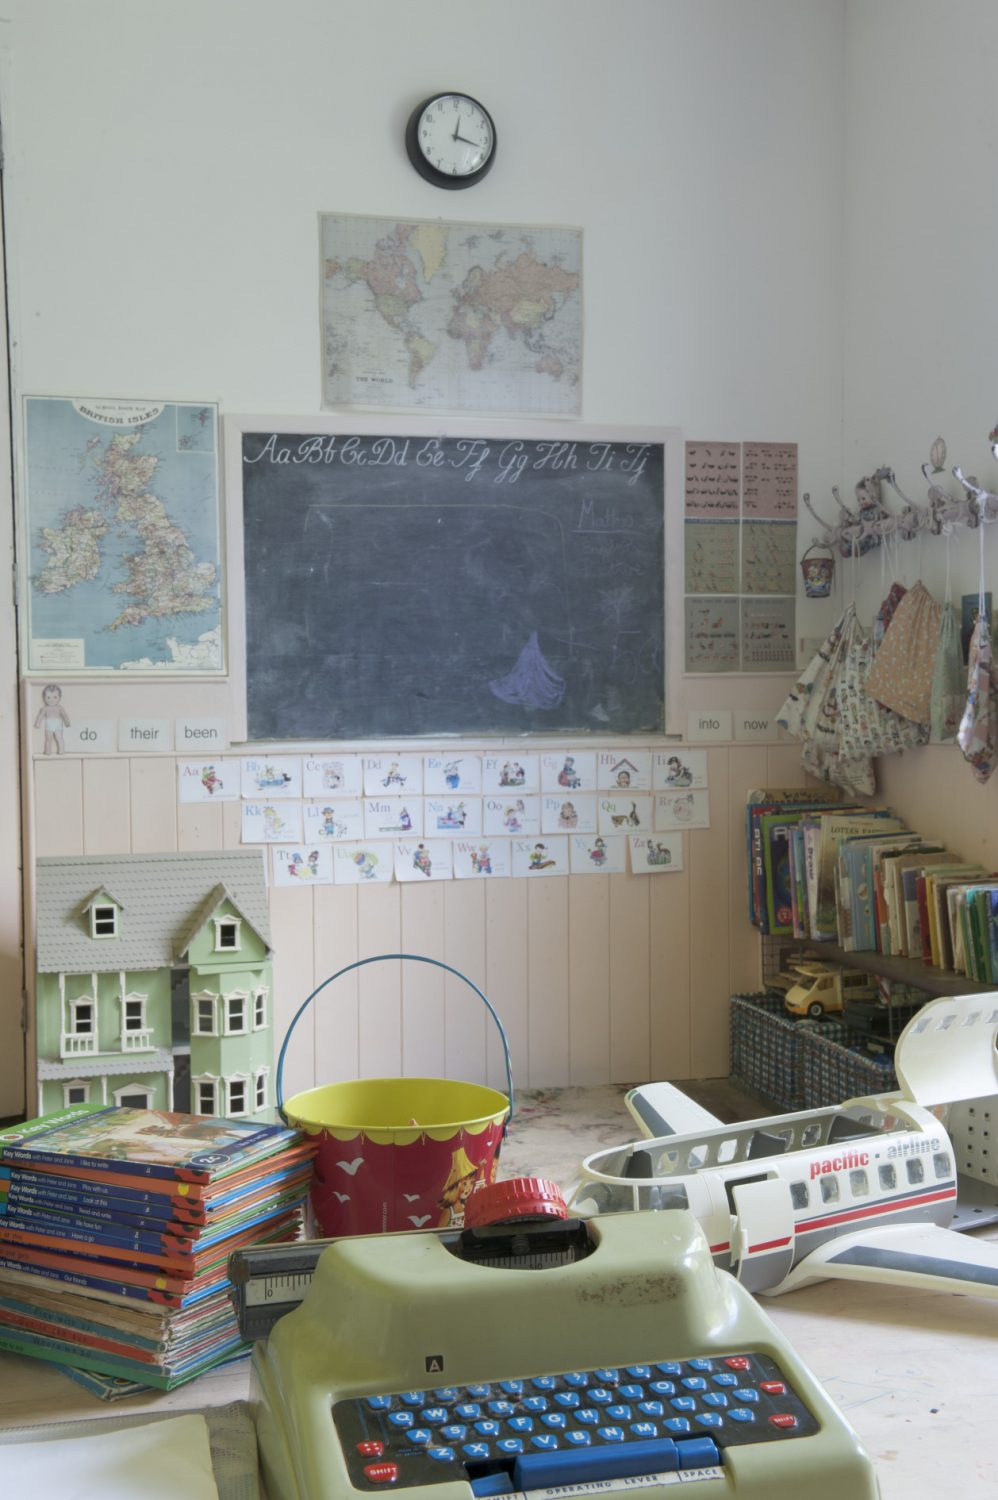 The downstairs playroom features classic schoolroom chalkboards and world maps